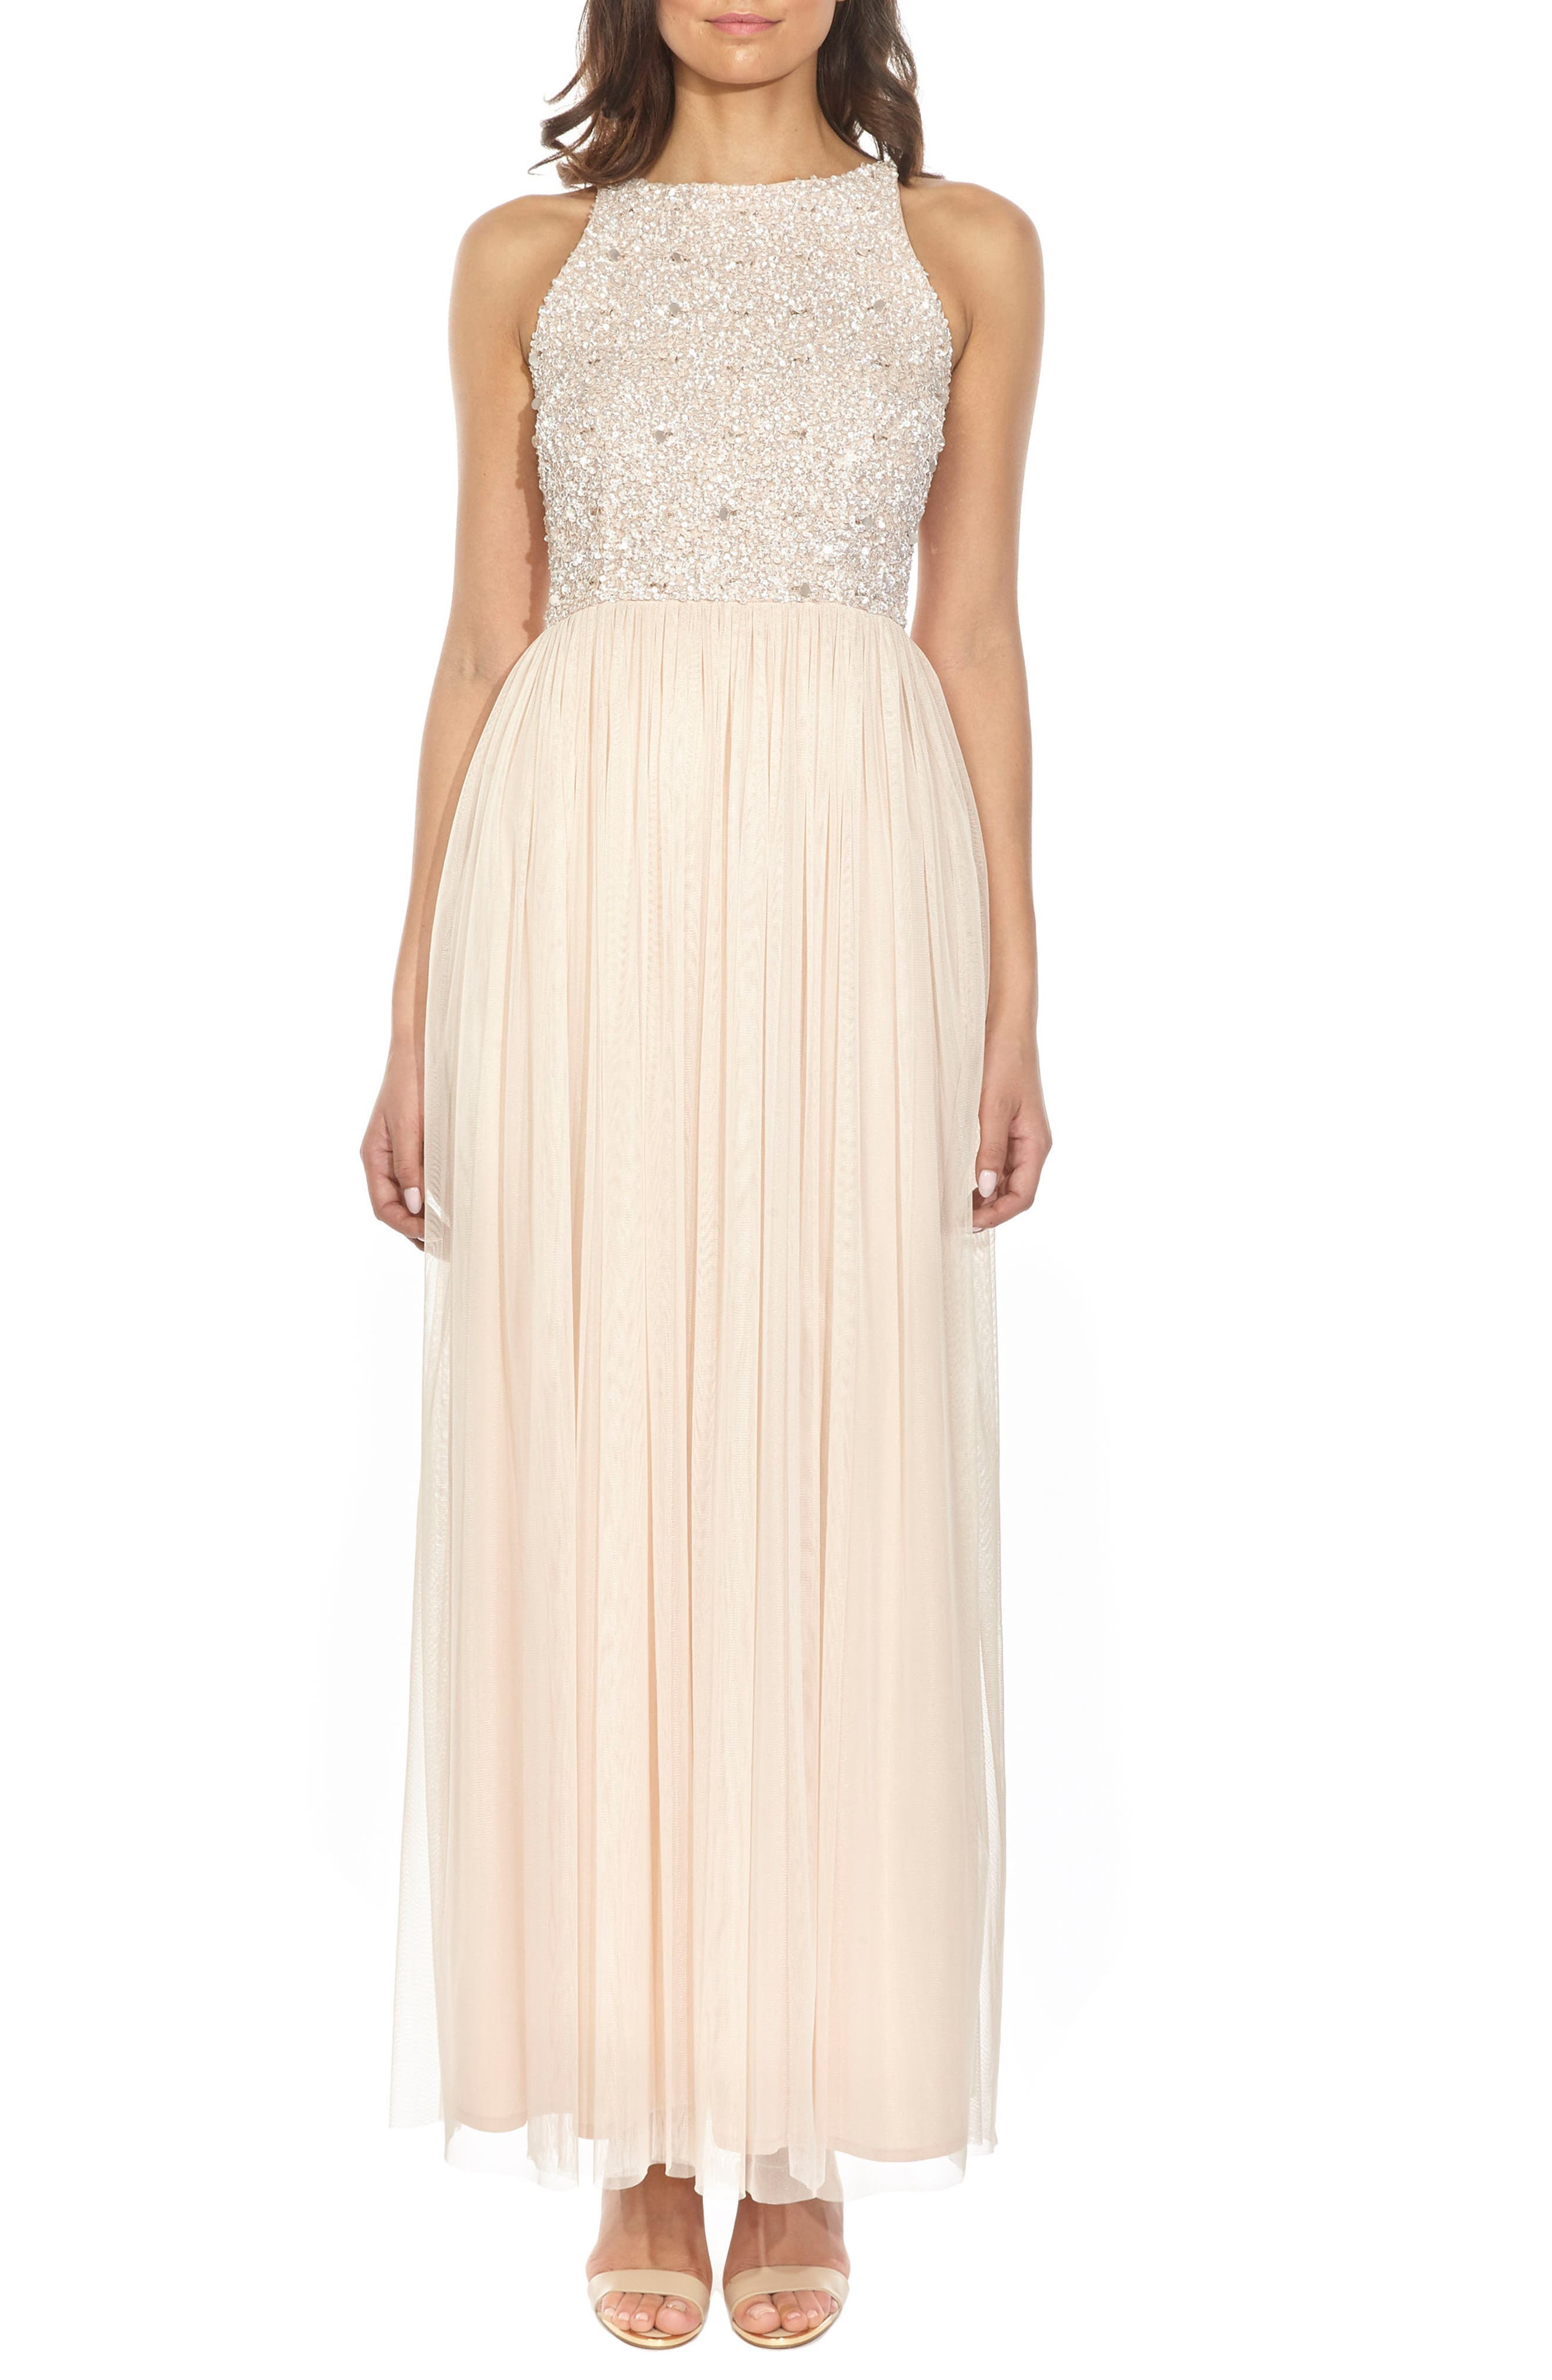 Picasso Embellished Bodice Maxi Dress,                         Main,                         color, Nude